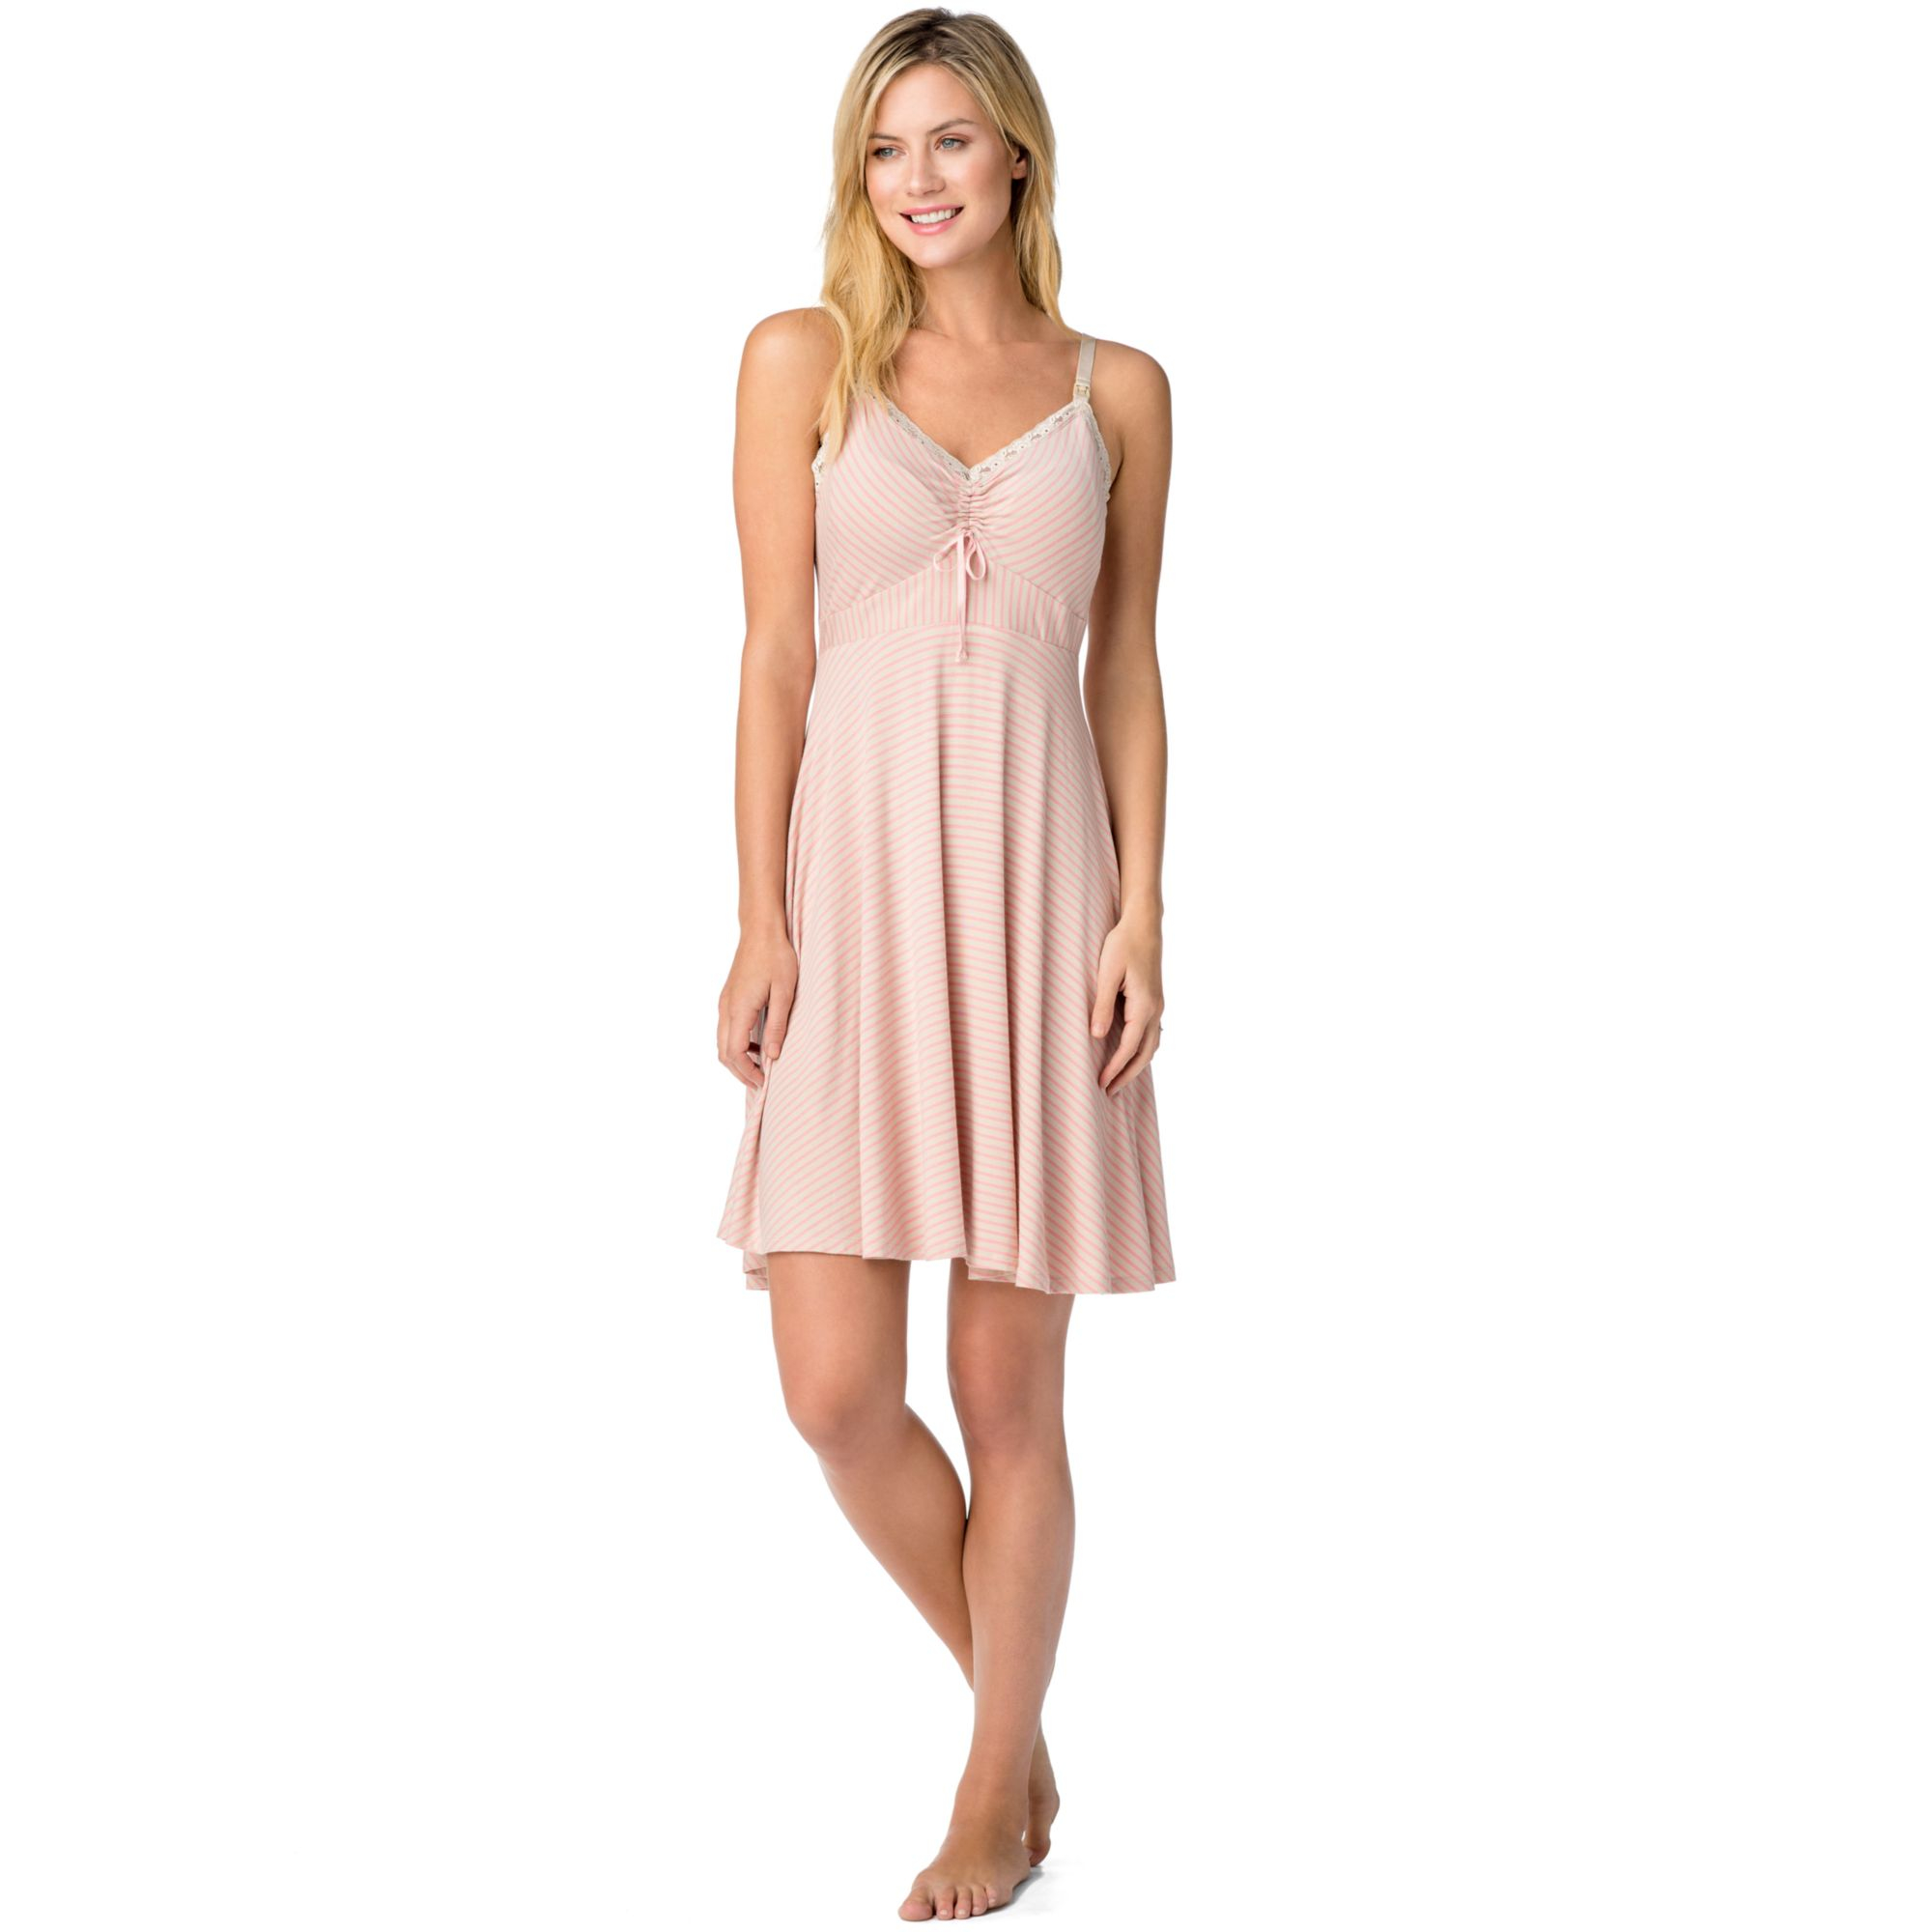 Lyst - Jessica Simpson Maternity Striped Nursing Nightgown in Pink